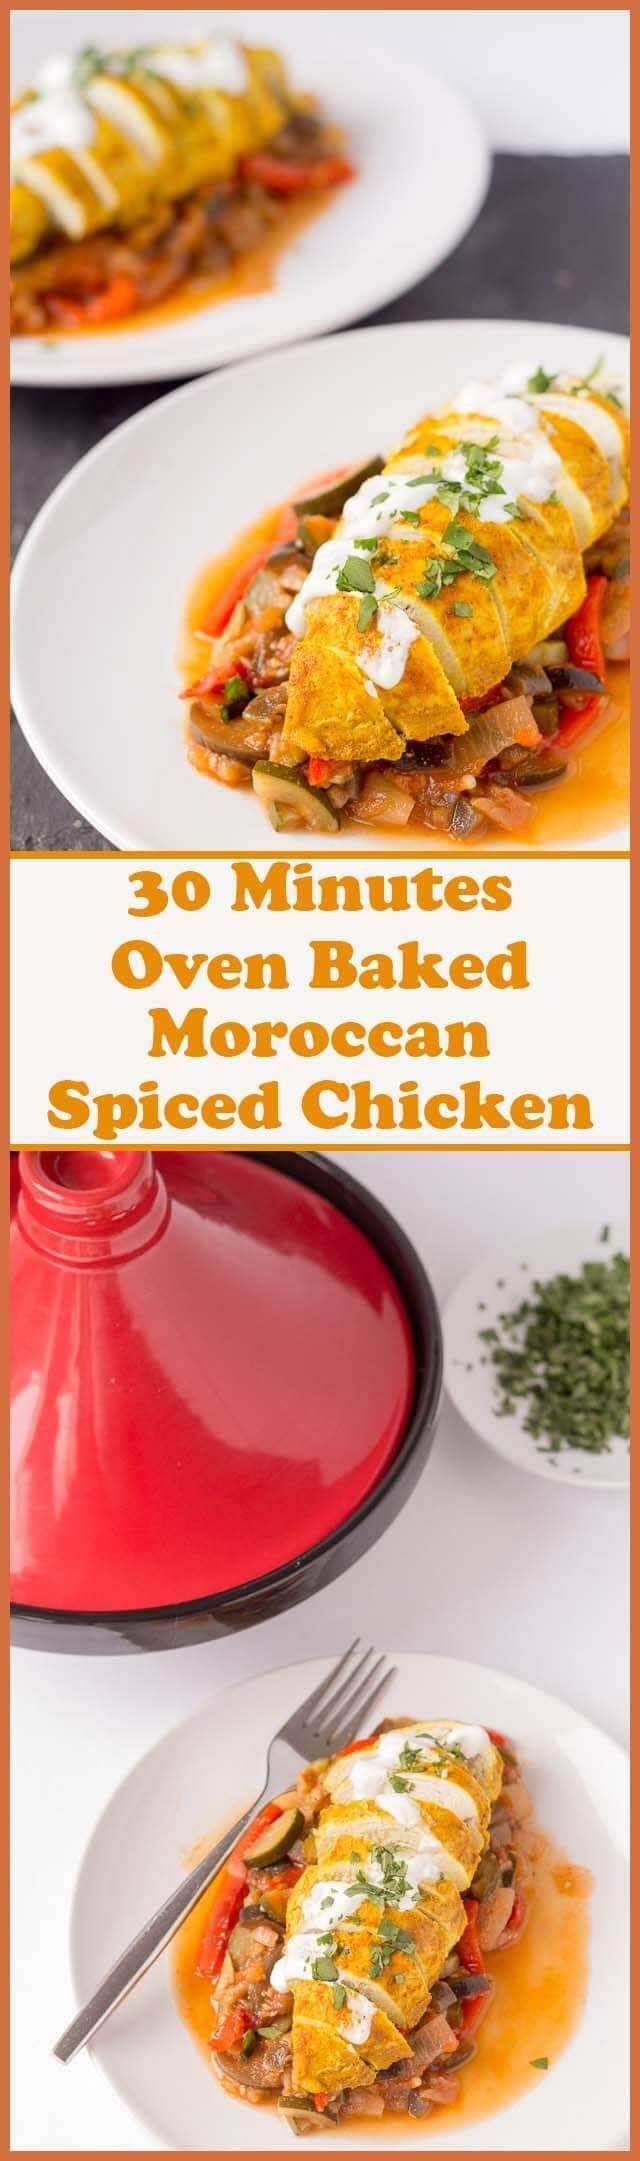 Oven baked Moroccan spiced chicken is an easy 30 minutes foil baked chicken recipe which takes very little effort to make. With just 5 ingredients and 5 steps you'll soon have this tasty quick healthy meal on the dinner table.